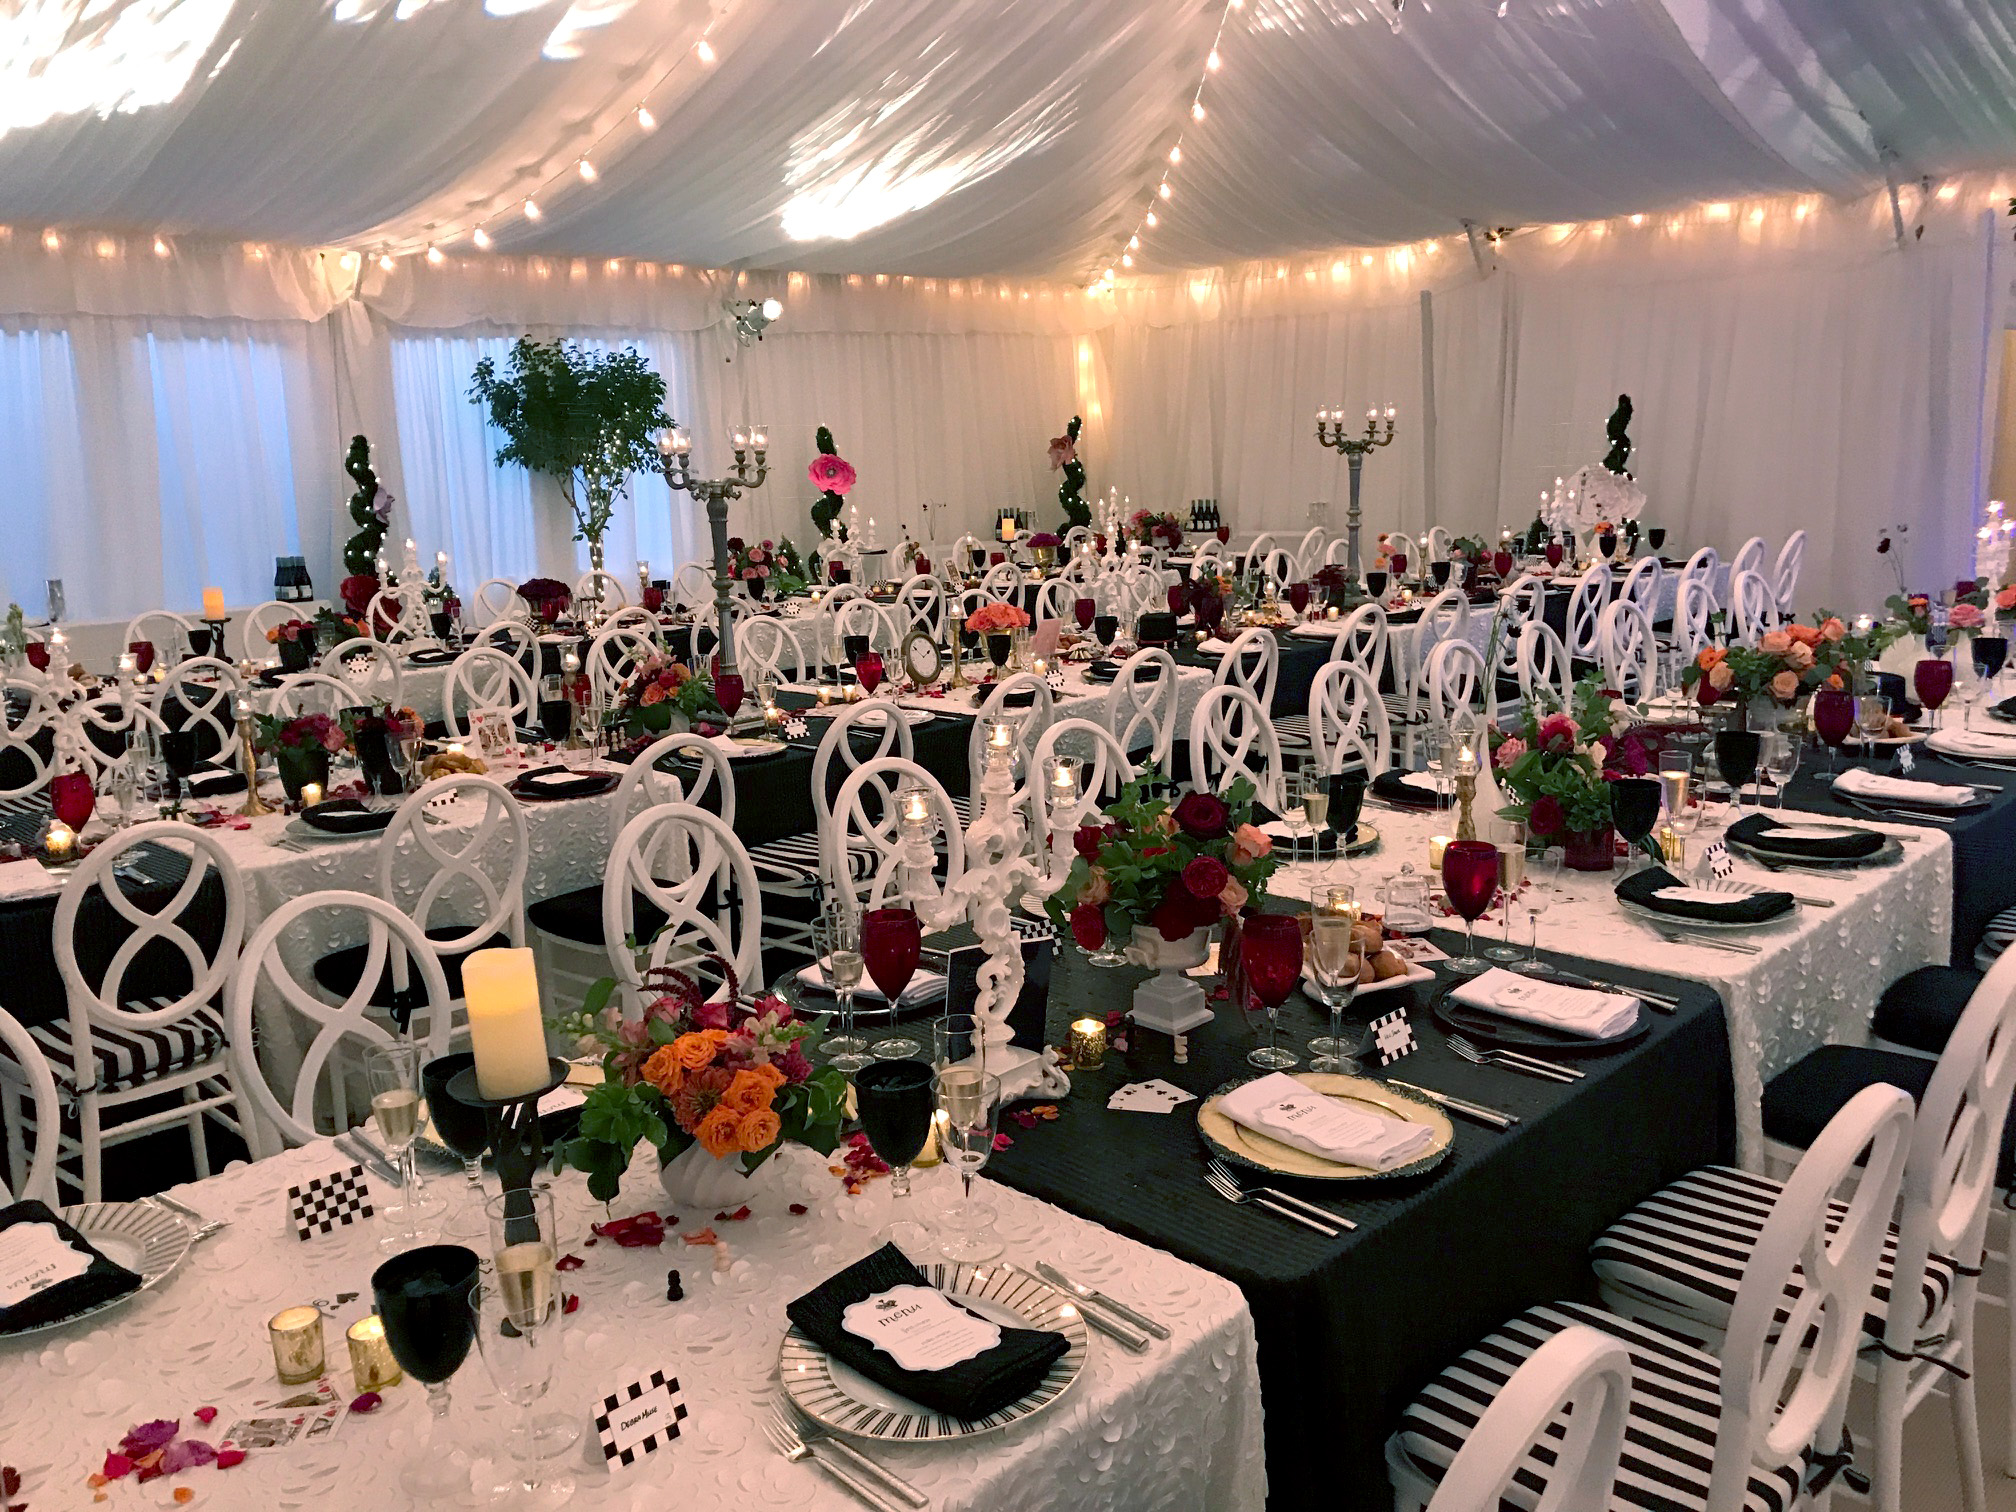 Alice wonderland table setting.jpg